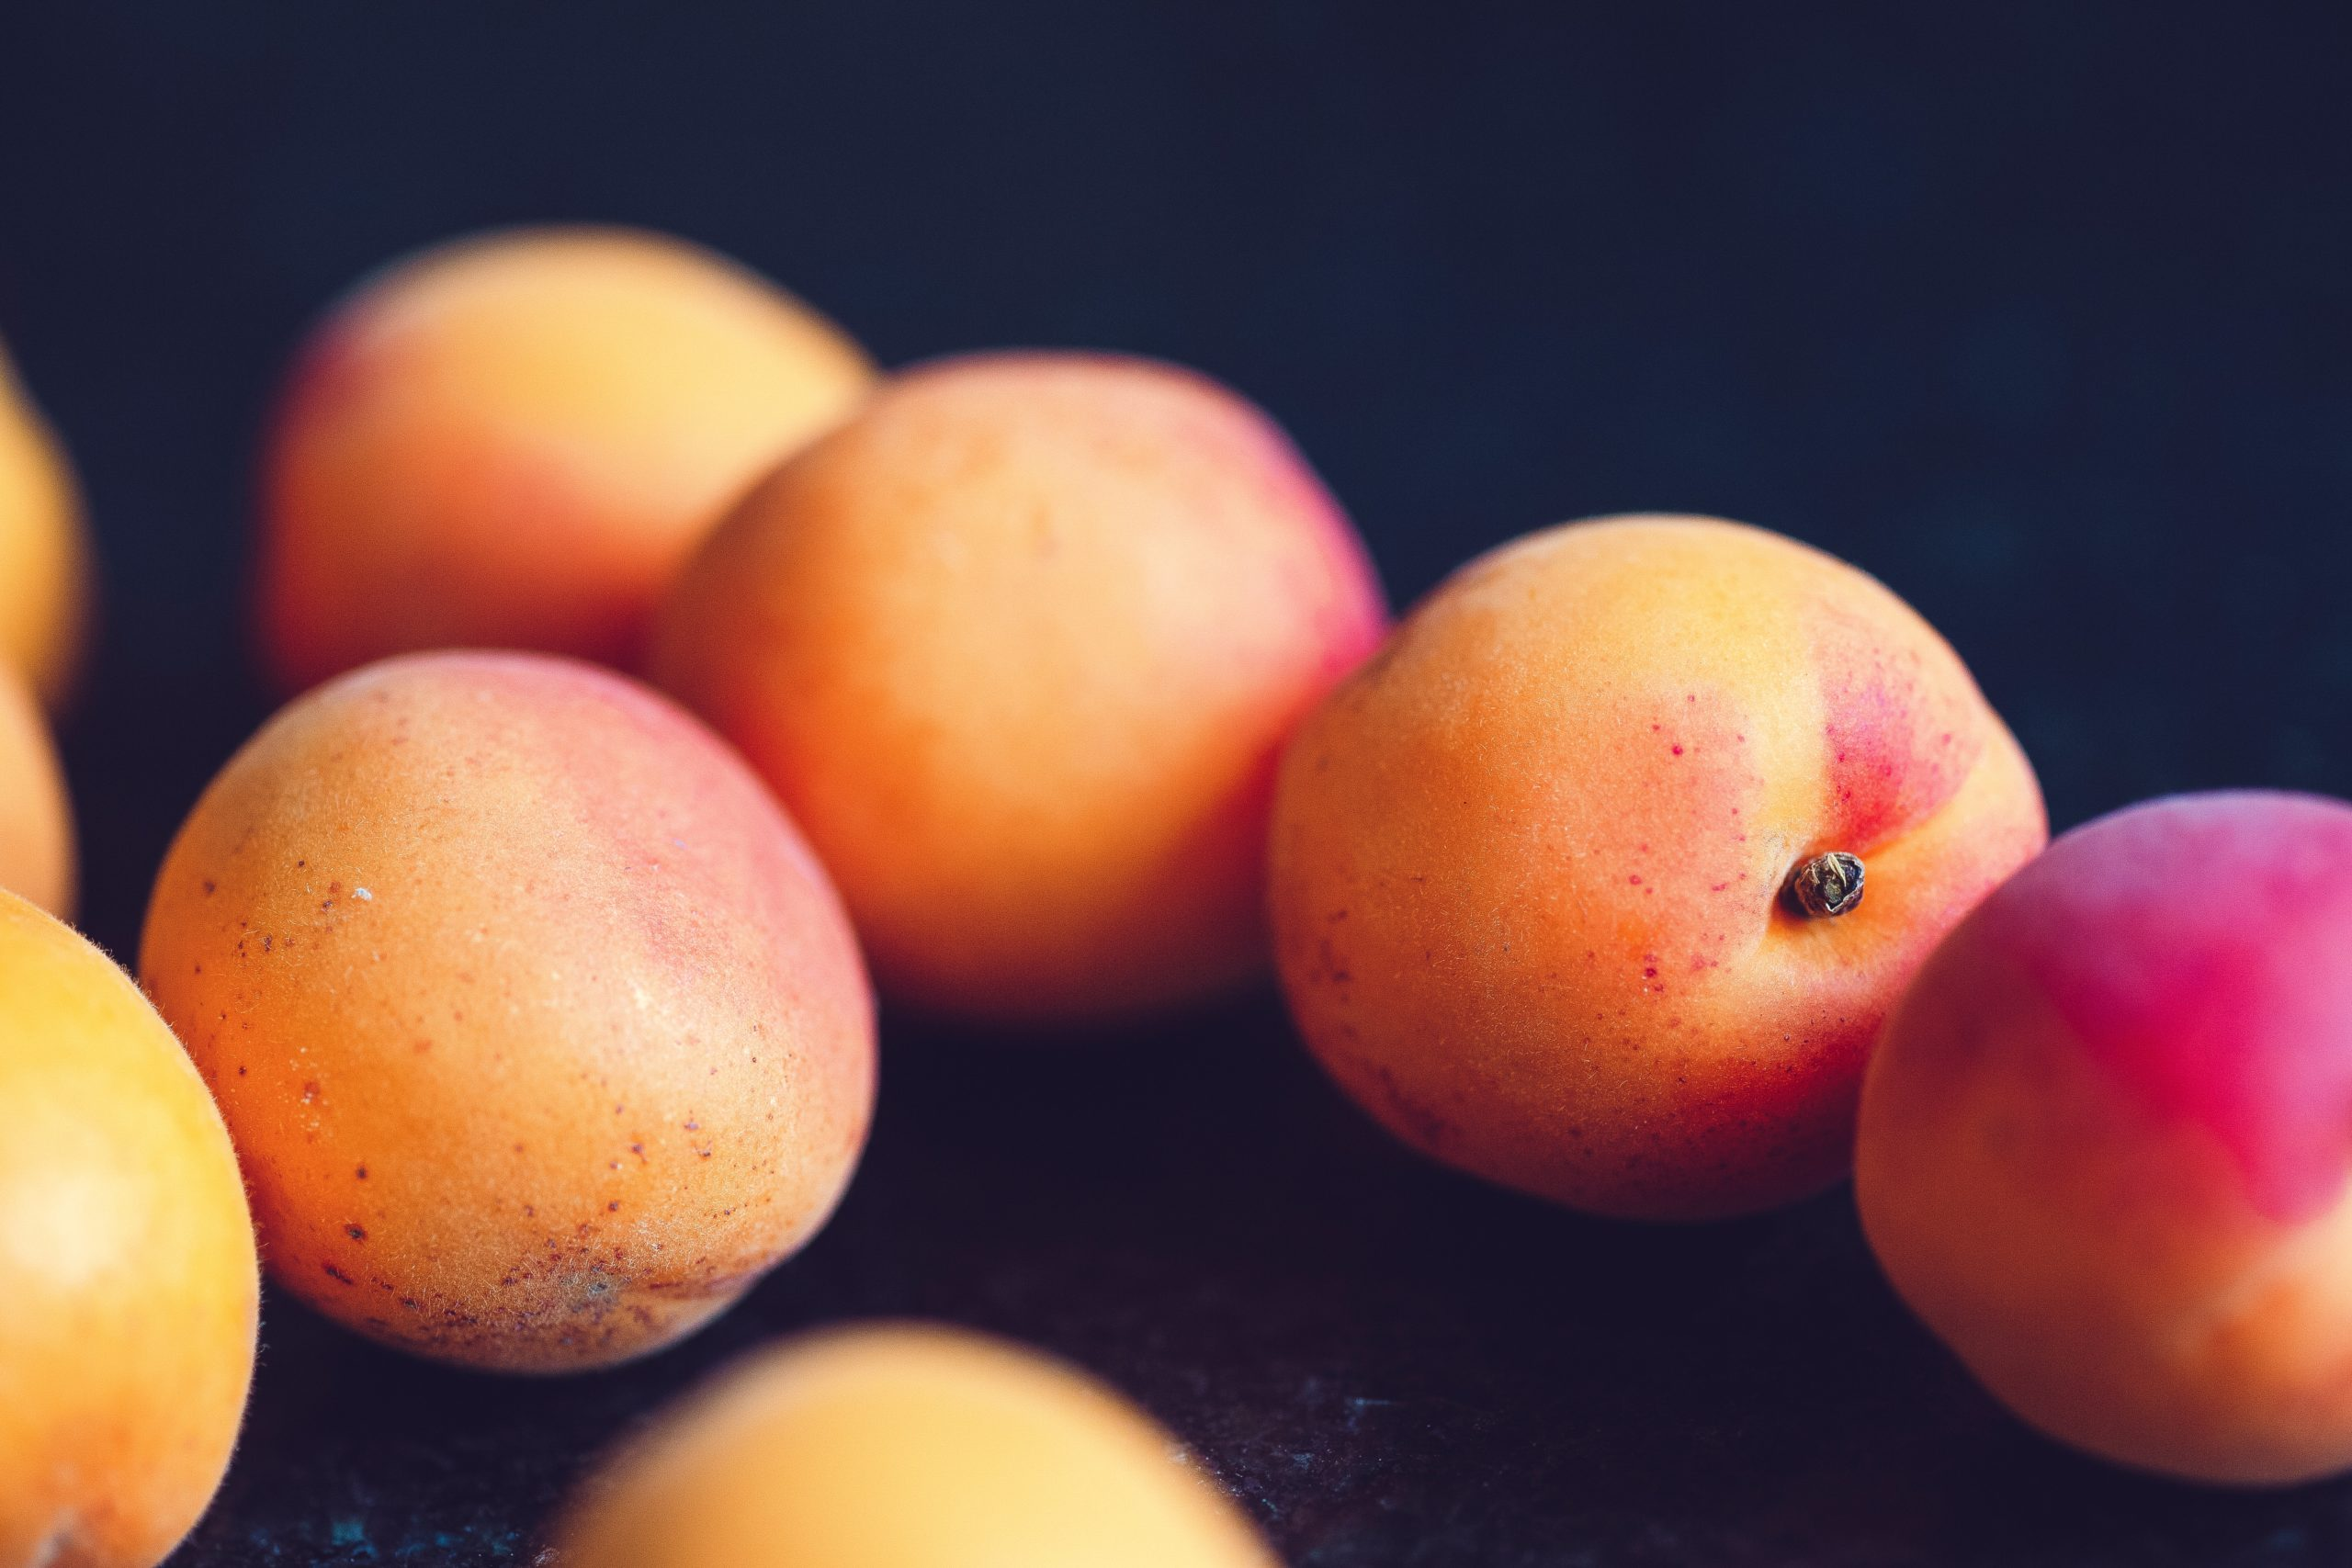 Southern culture peaches